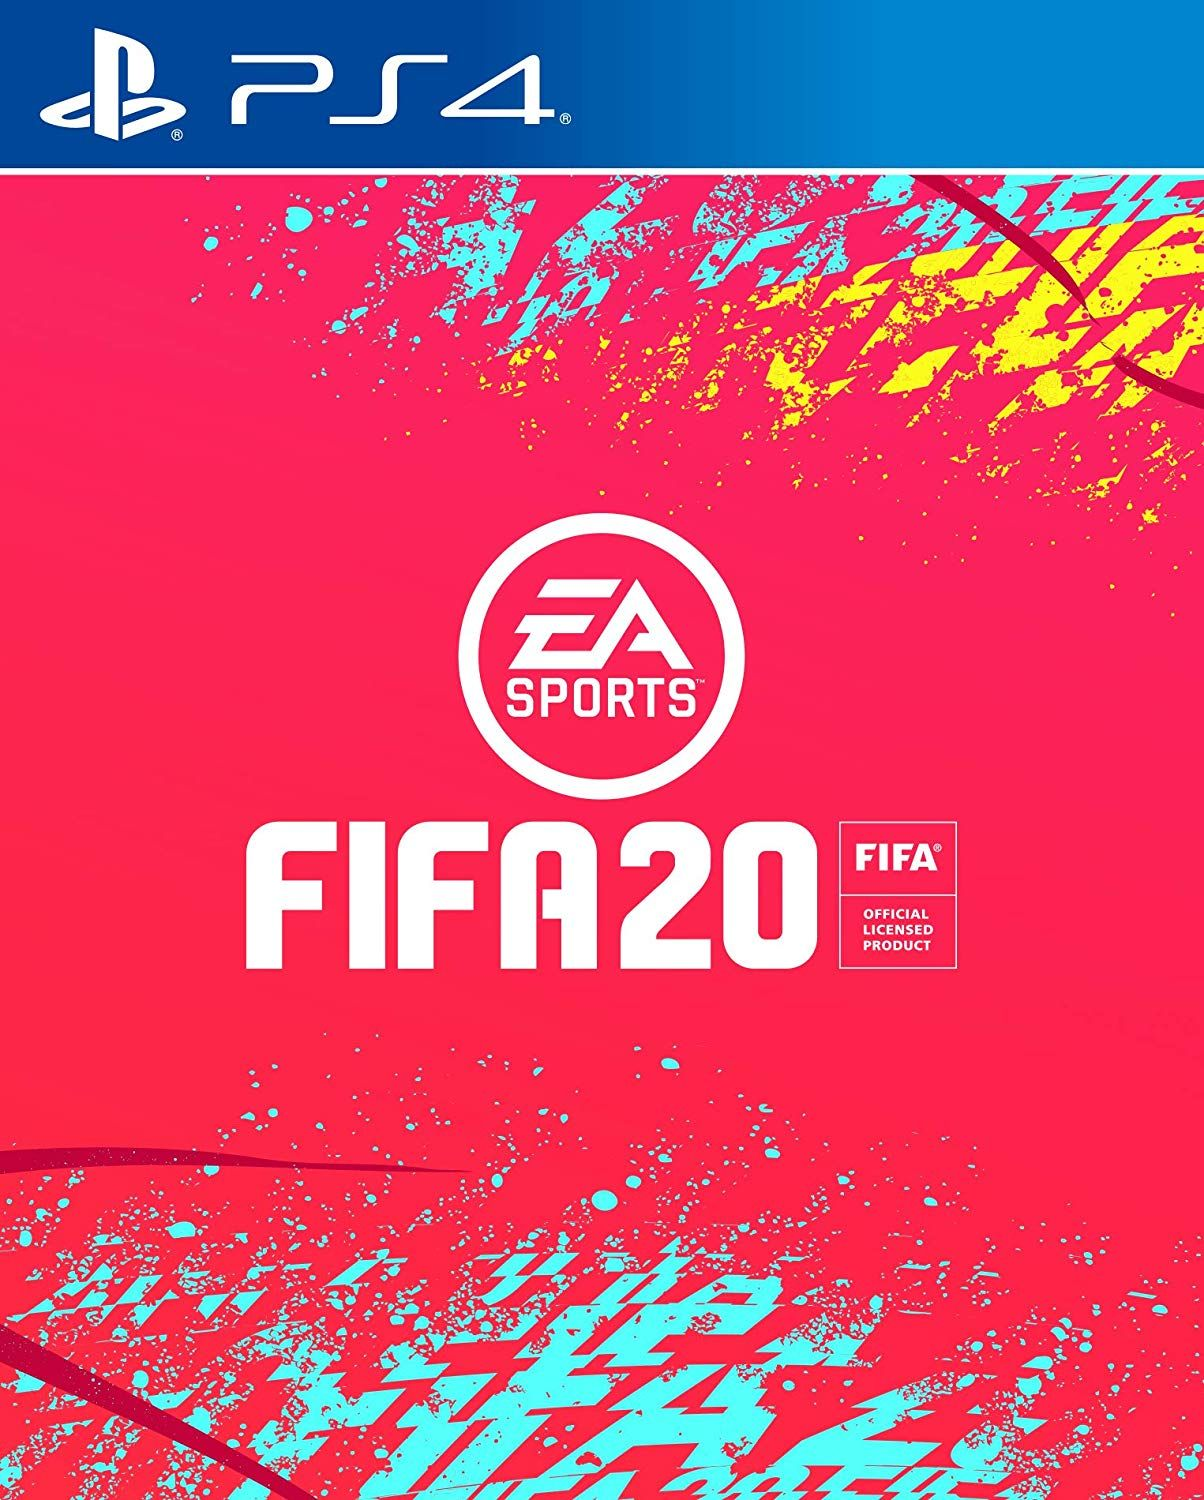 FIFA 20 Preview (PS4) Cheating, Game resources, Point hacks